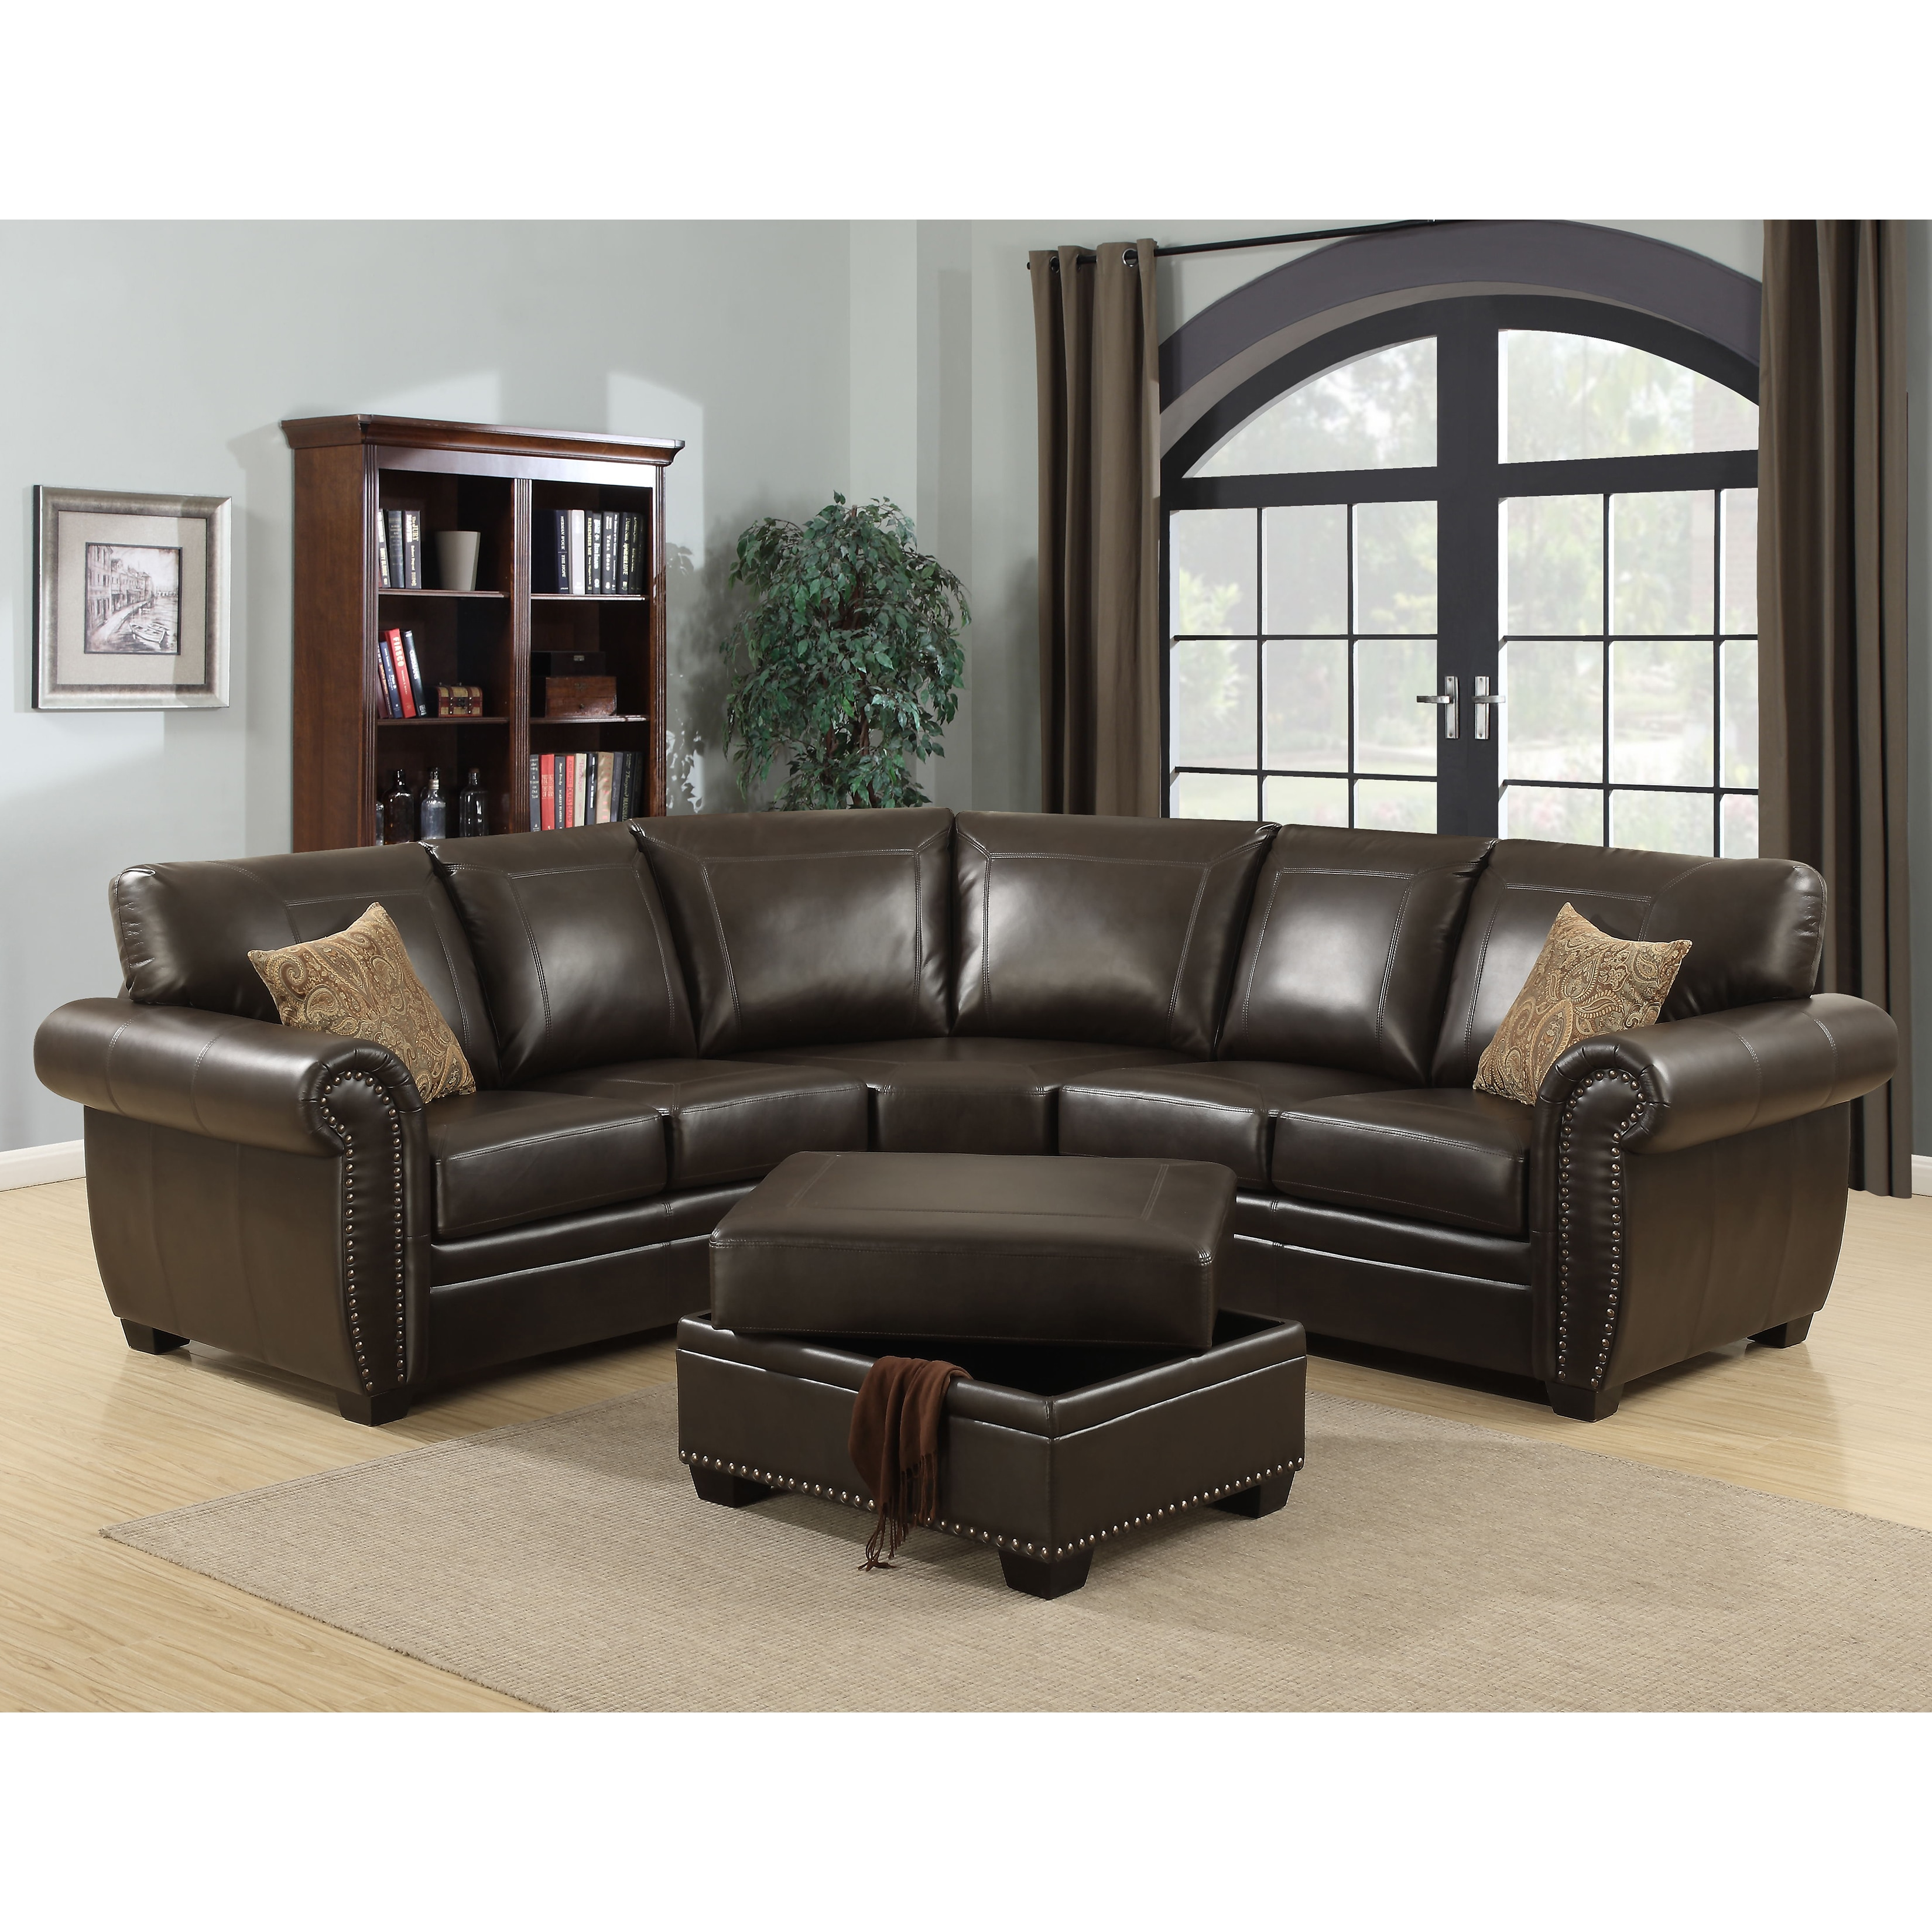 Ac Pacific Louis 3 Piece Brown Living Room Sectional With Ottoman